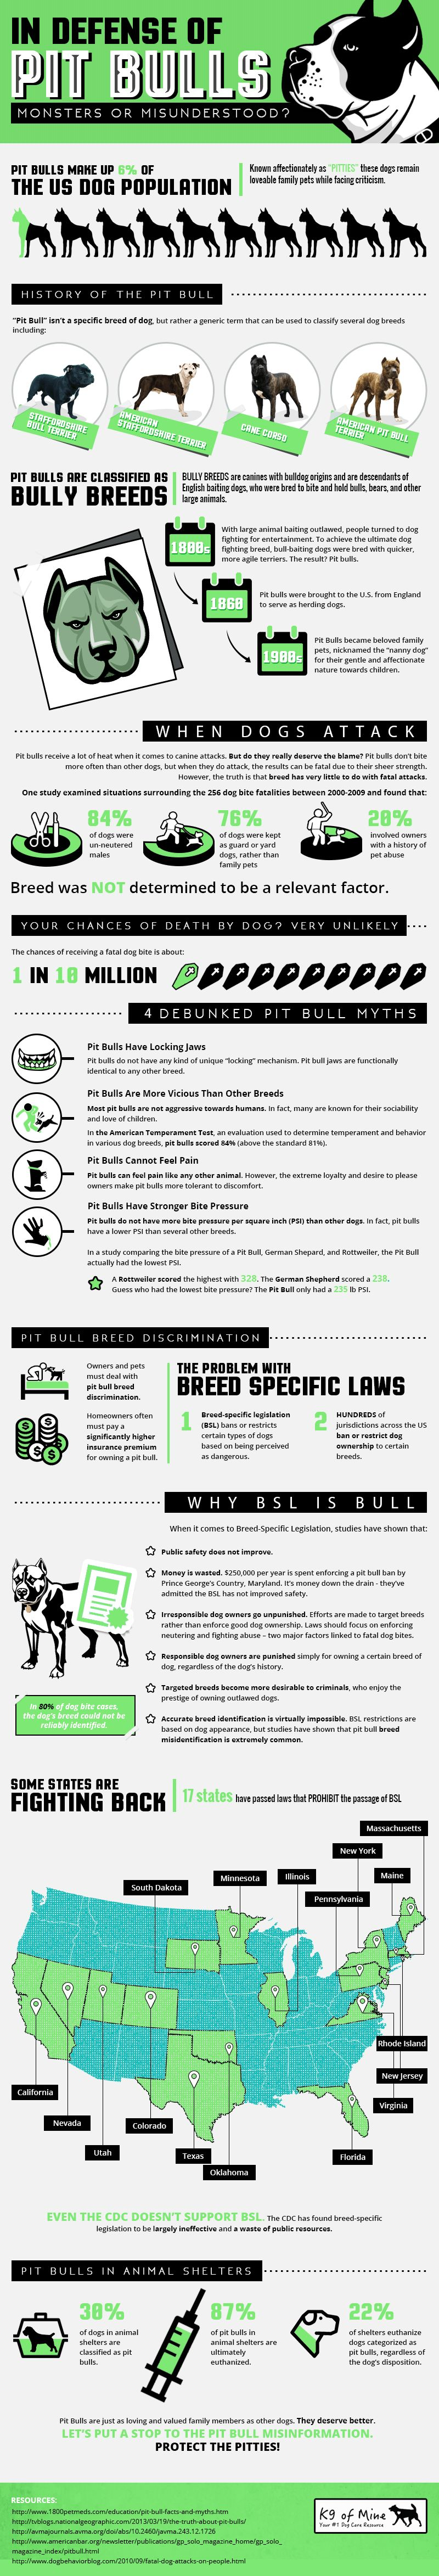 Pit bull infographic: the truth about pit bulls